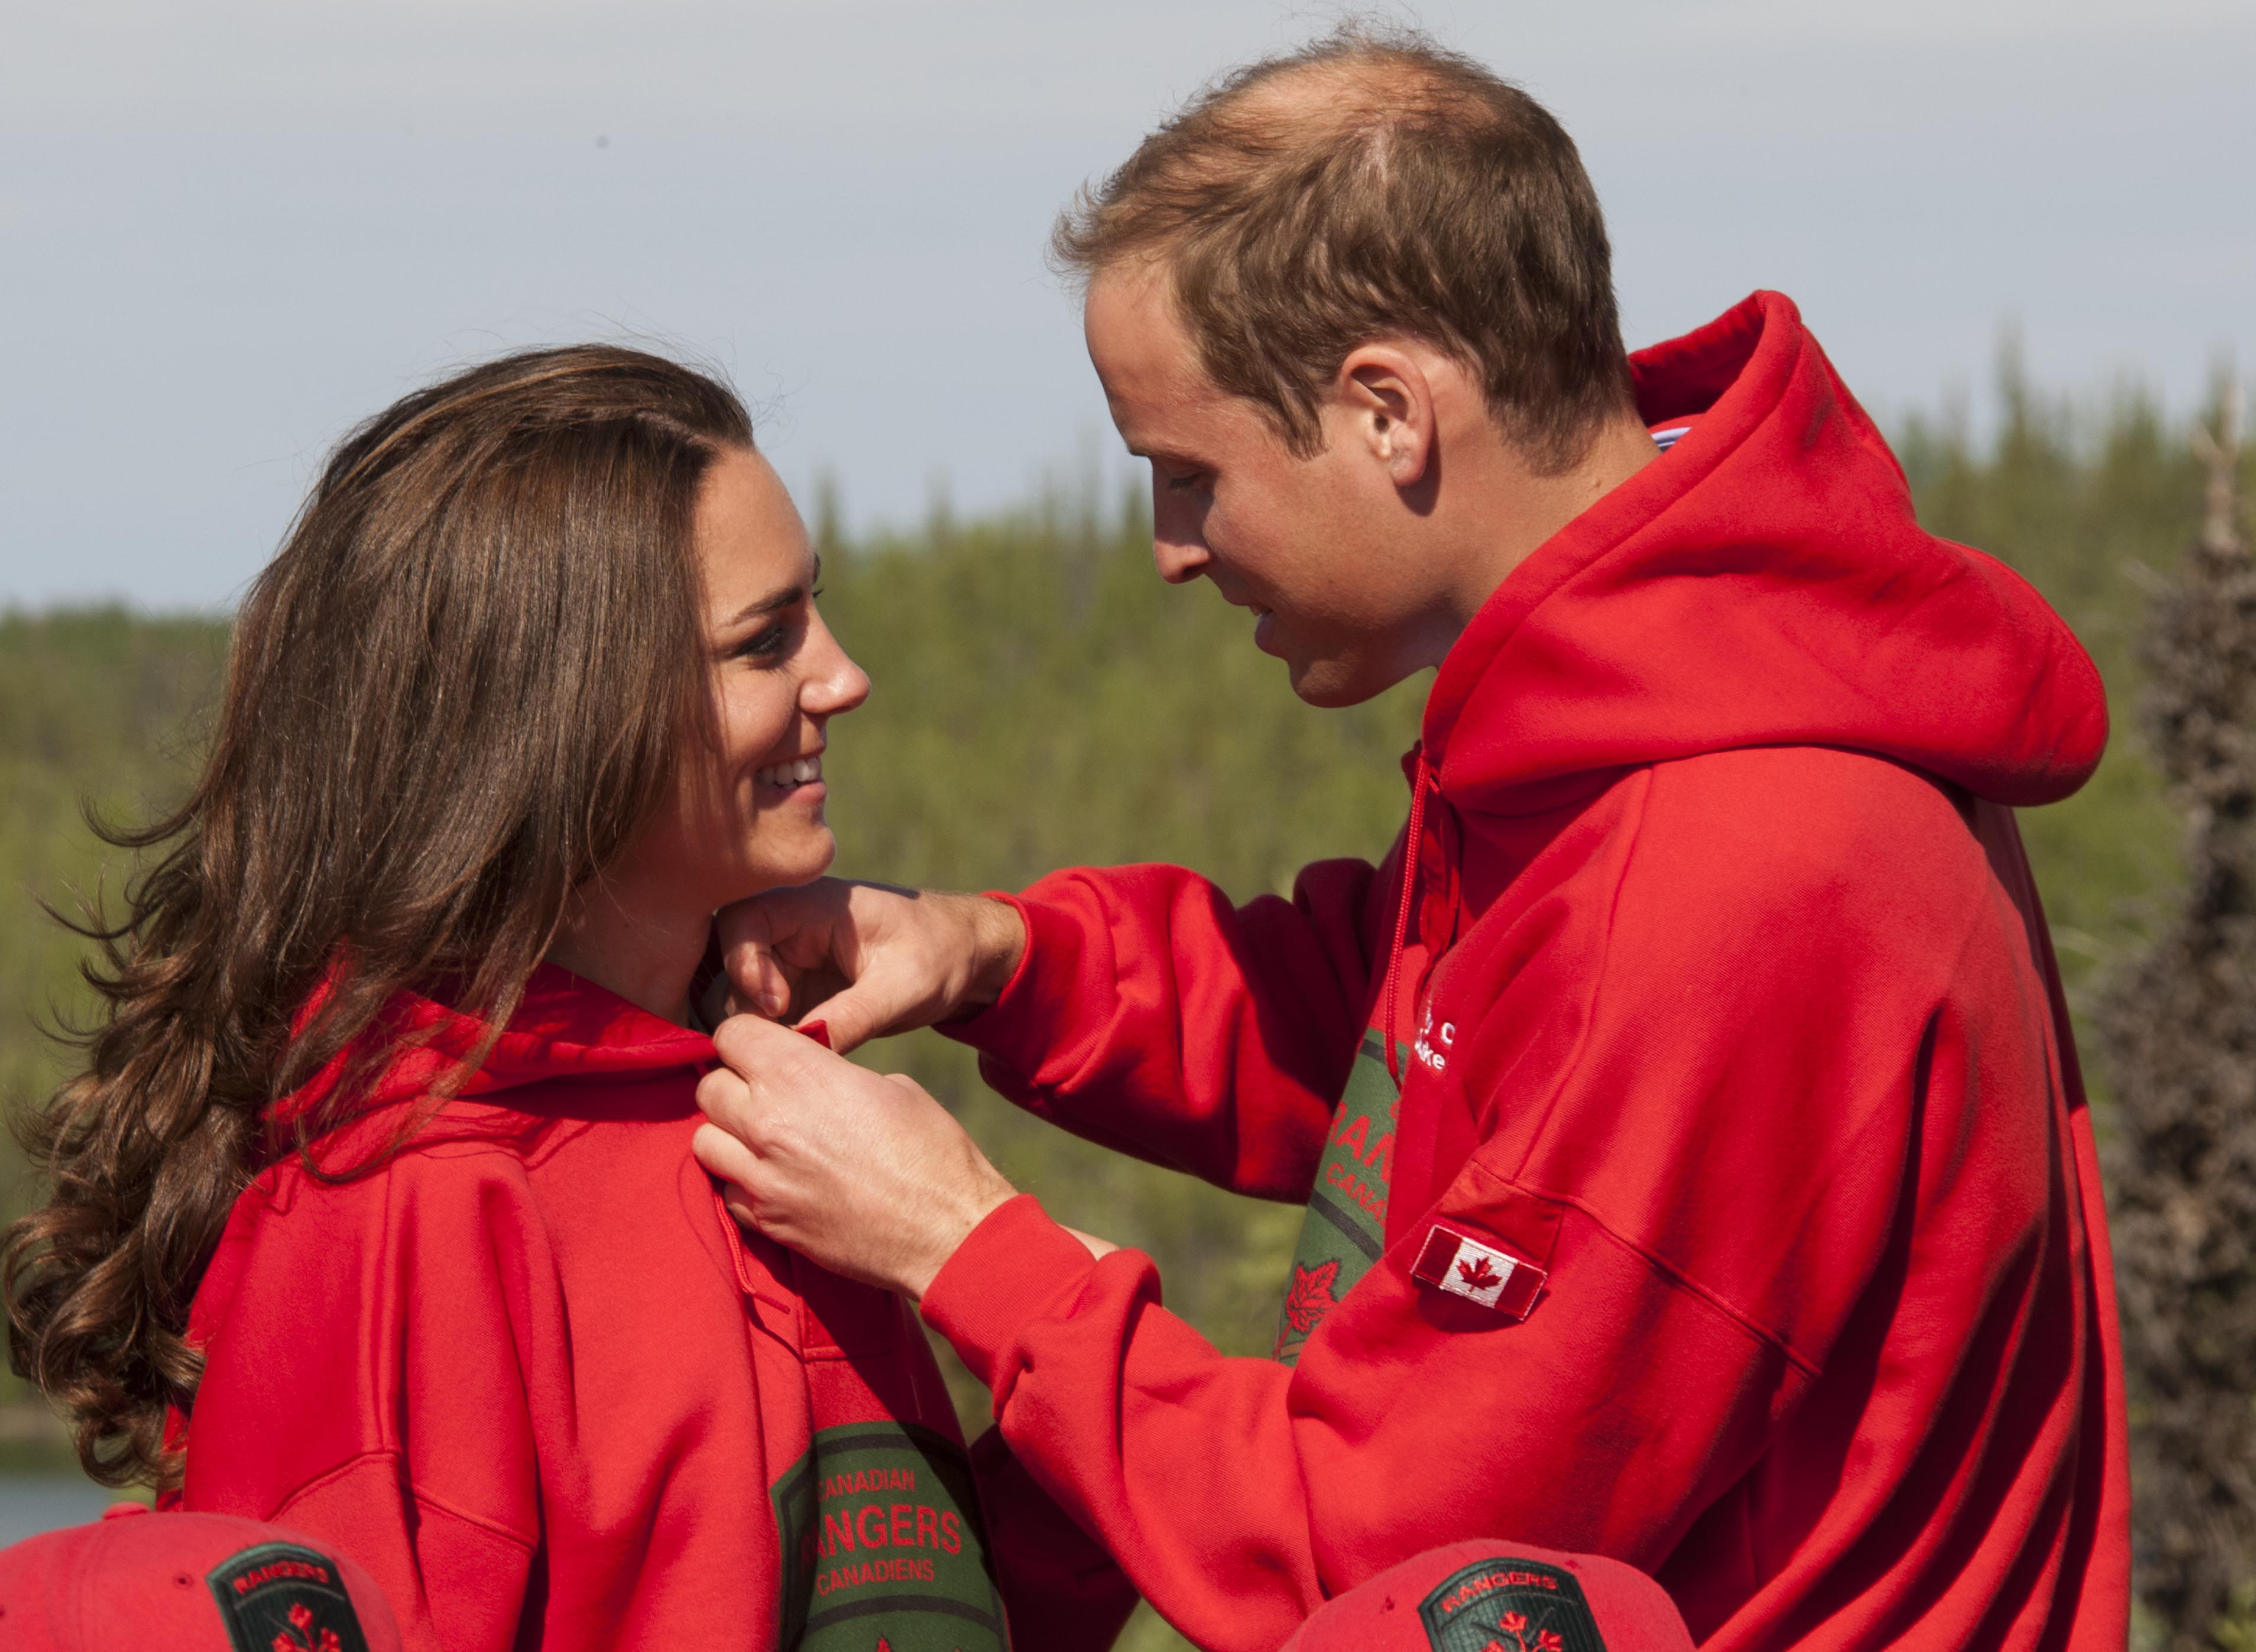 Prince WIlliam Kate Middleton jackets getty